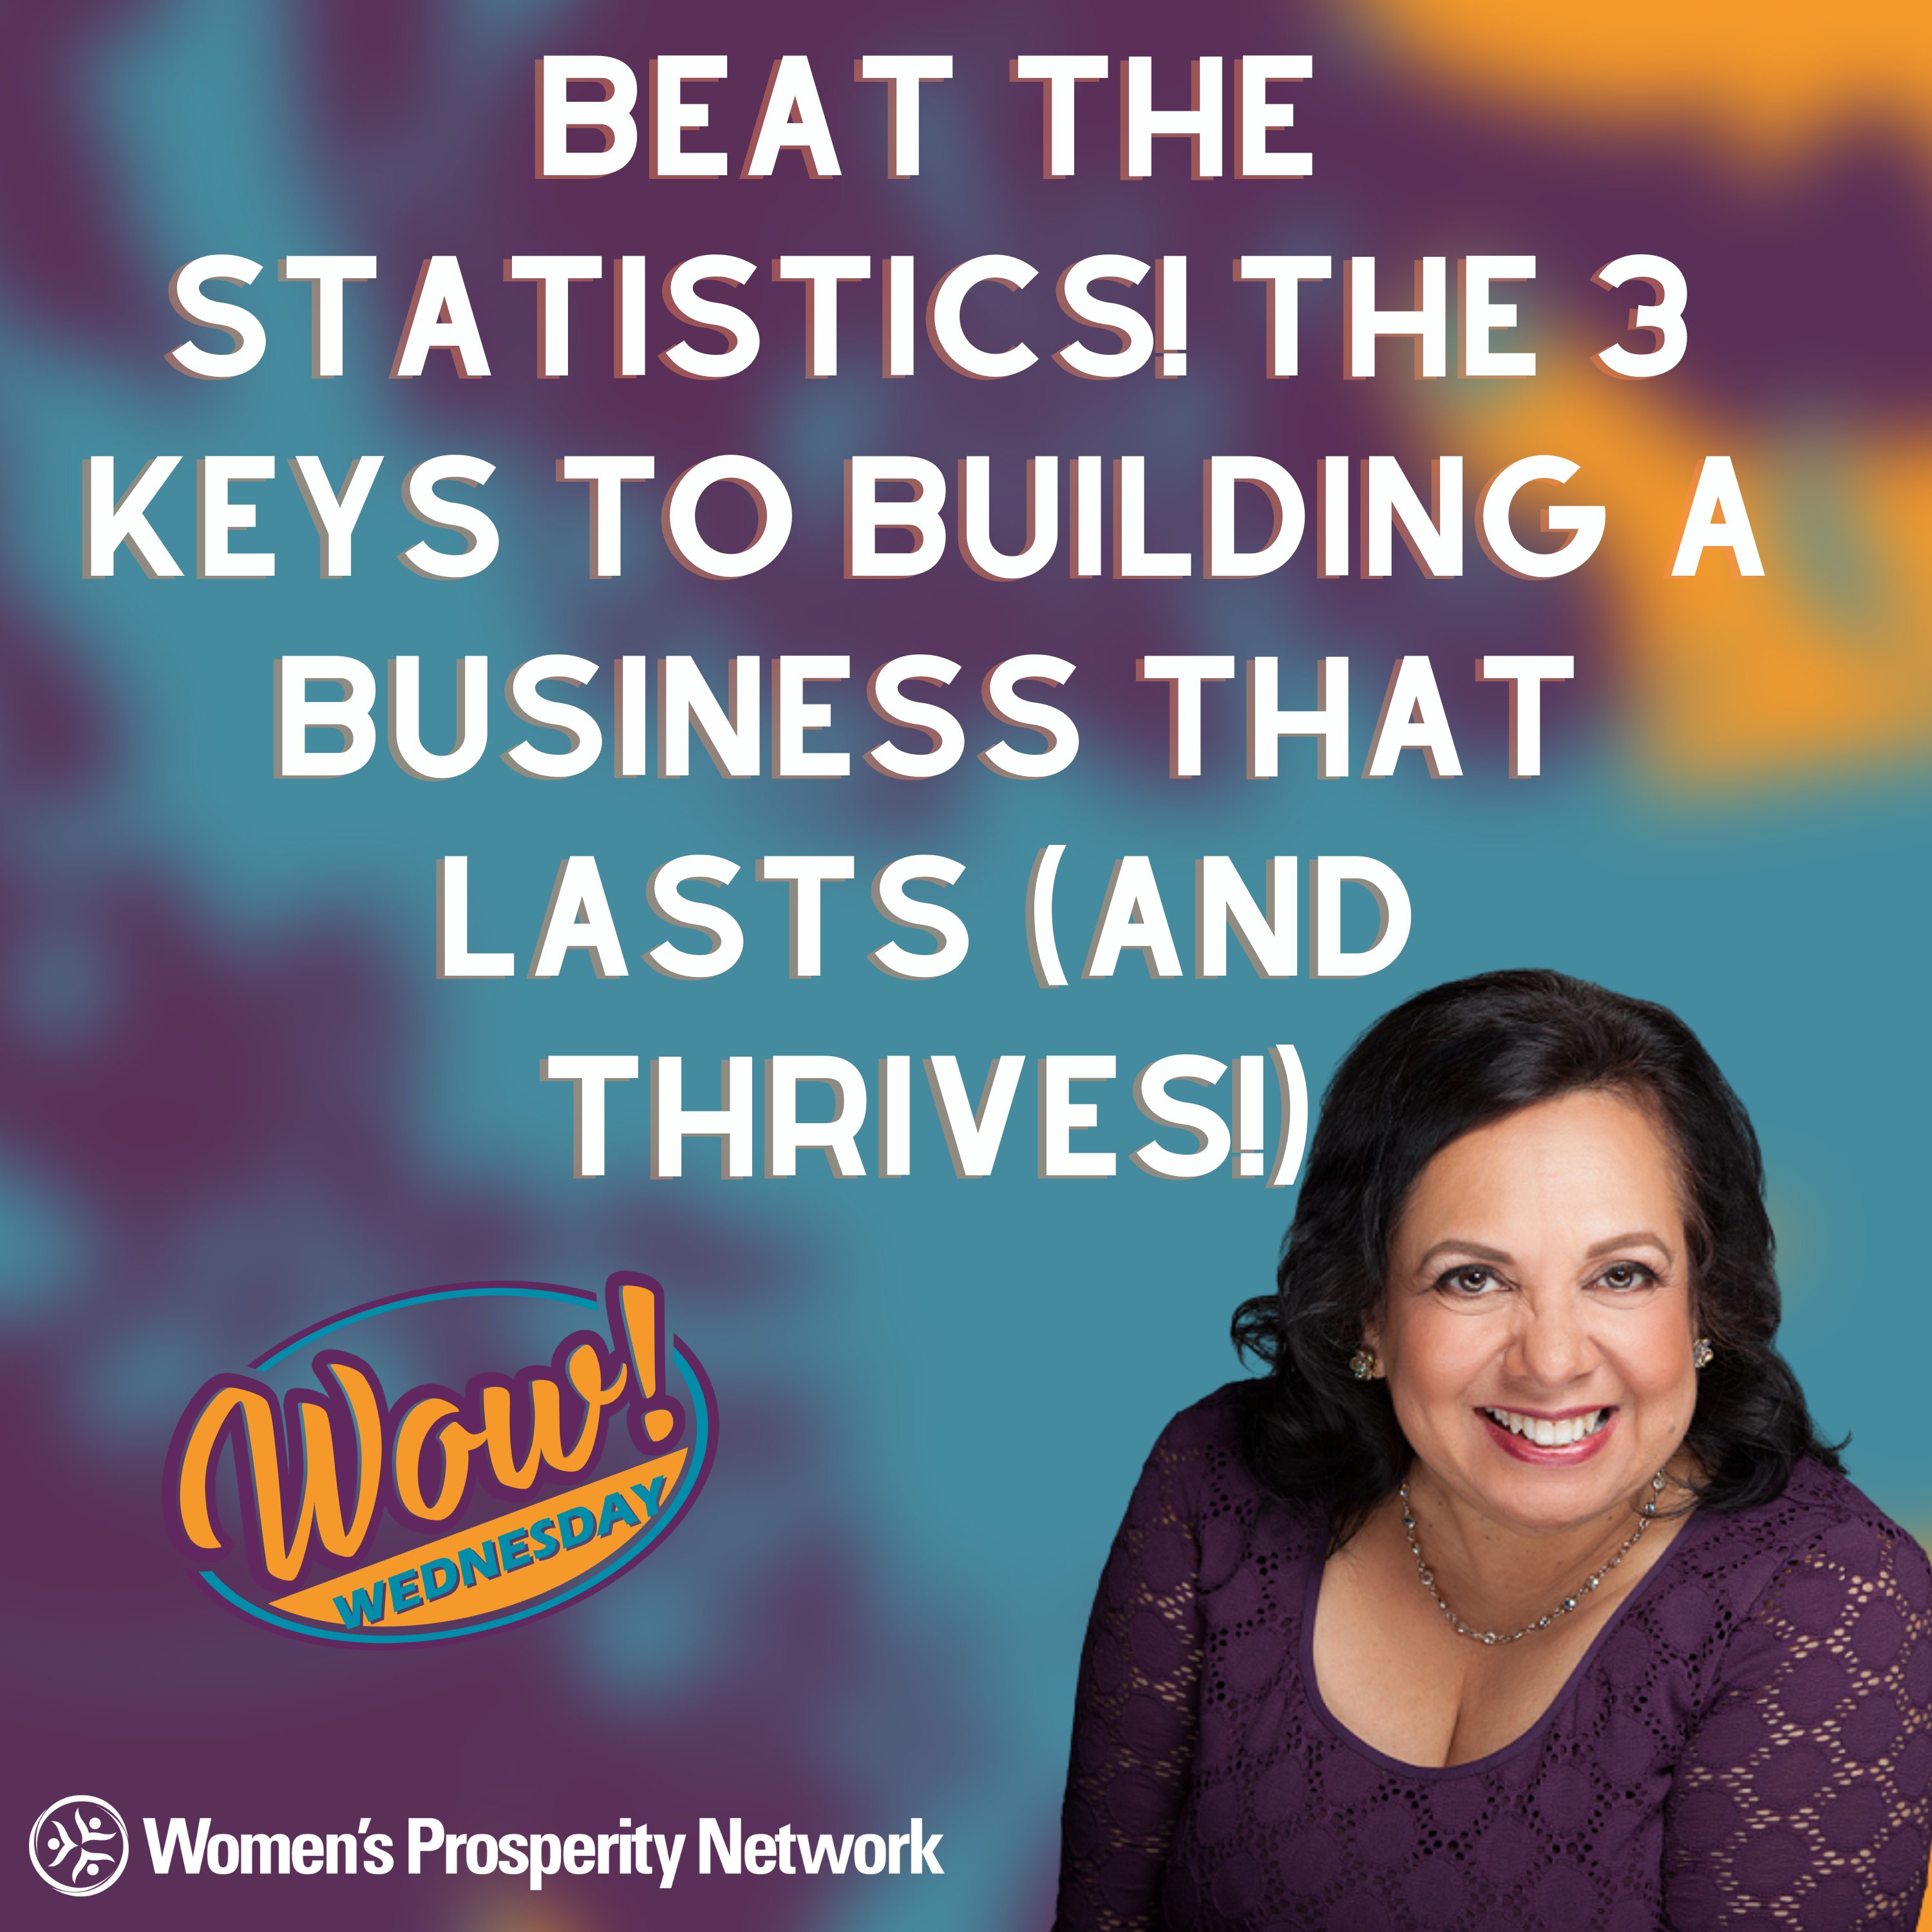 Beat the Statistics! The 3 Keys to Building a Business that Lasts (and Thrives!)